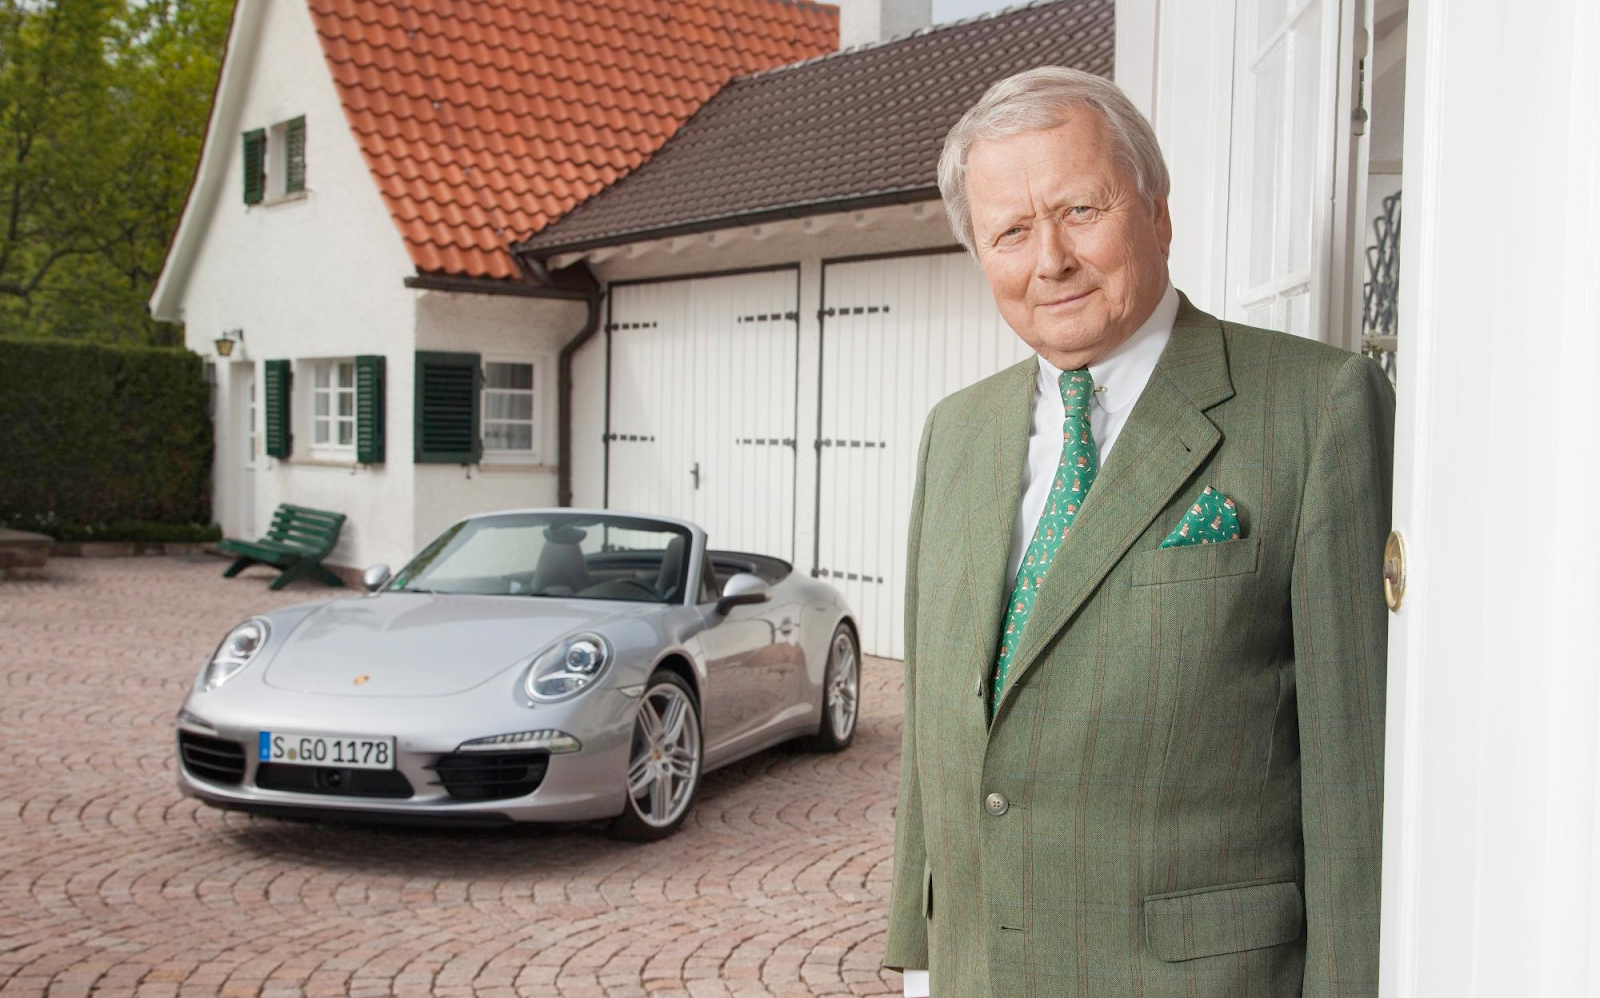 Thank you, my humble patients, for making me so very wealthy - Dr. Porsche